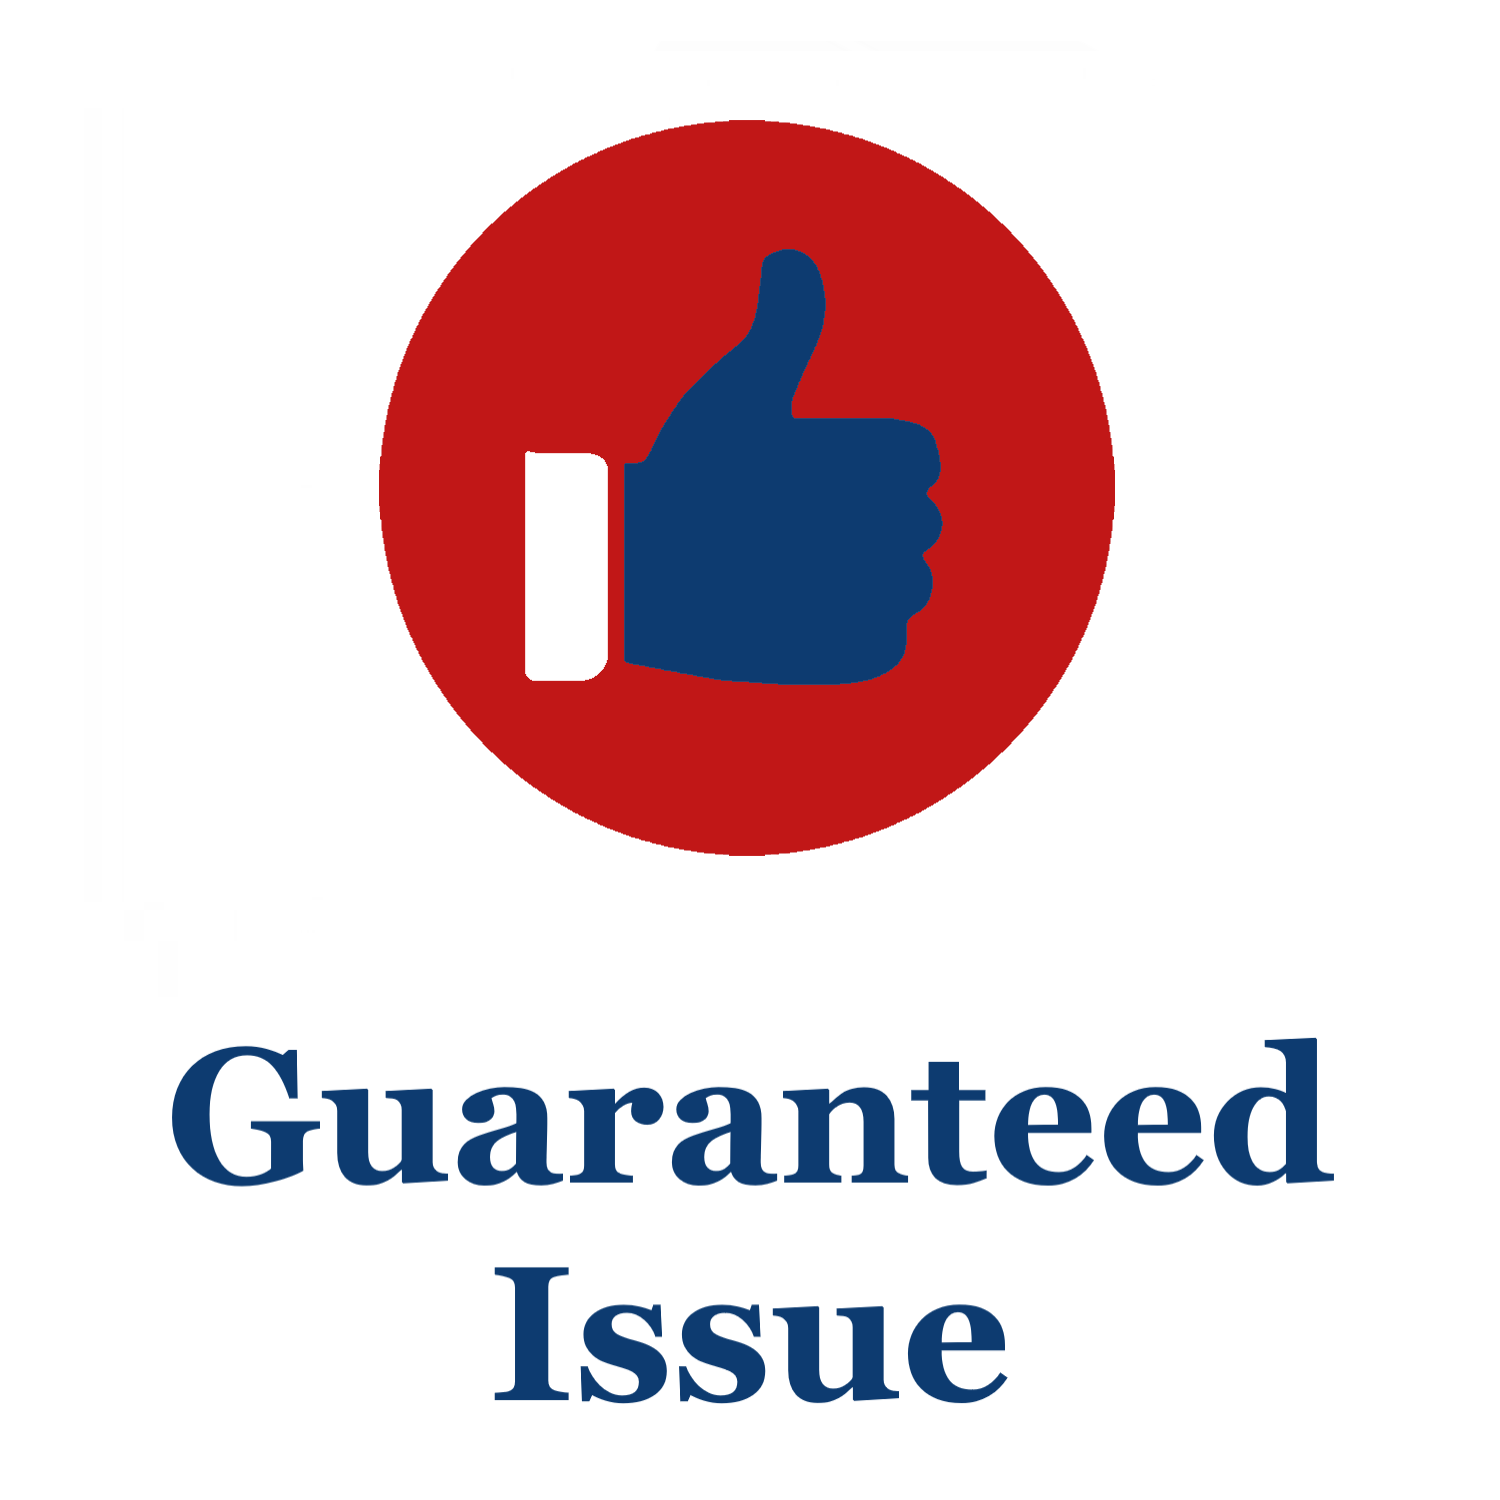 guaranteed issue